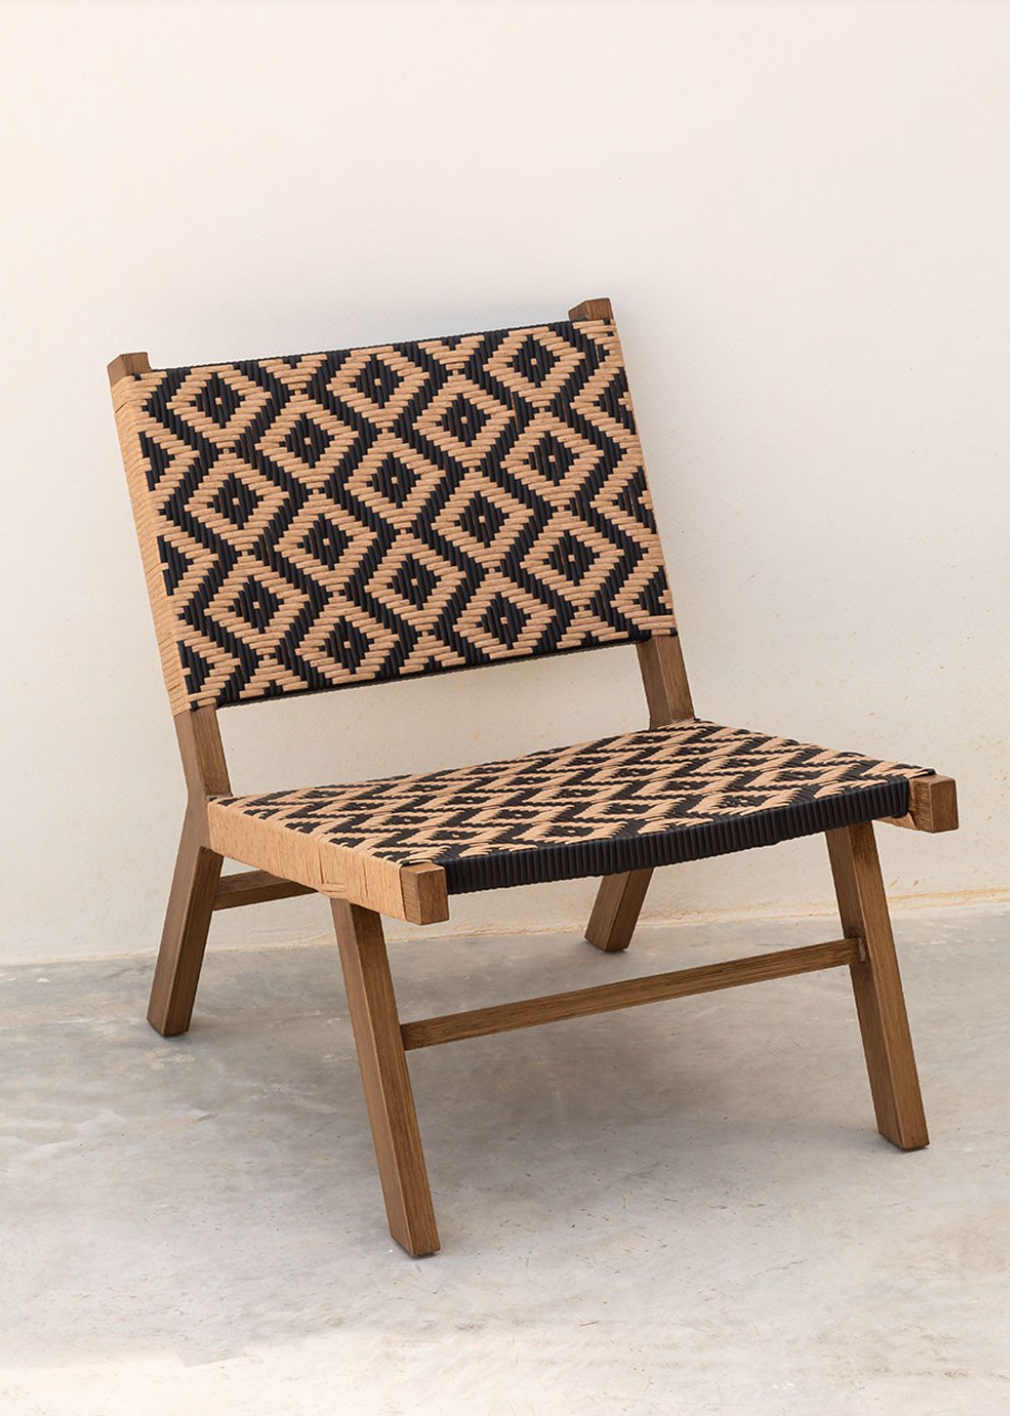 Black and natural diamond patterned synthetic woven outdoor lounge chair.